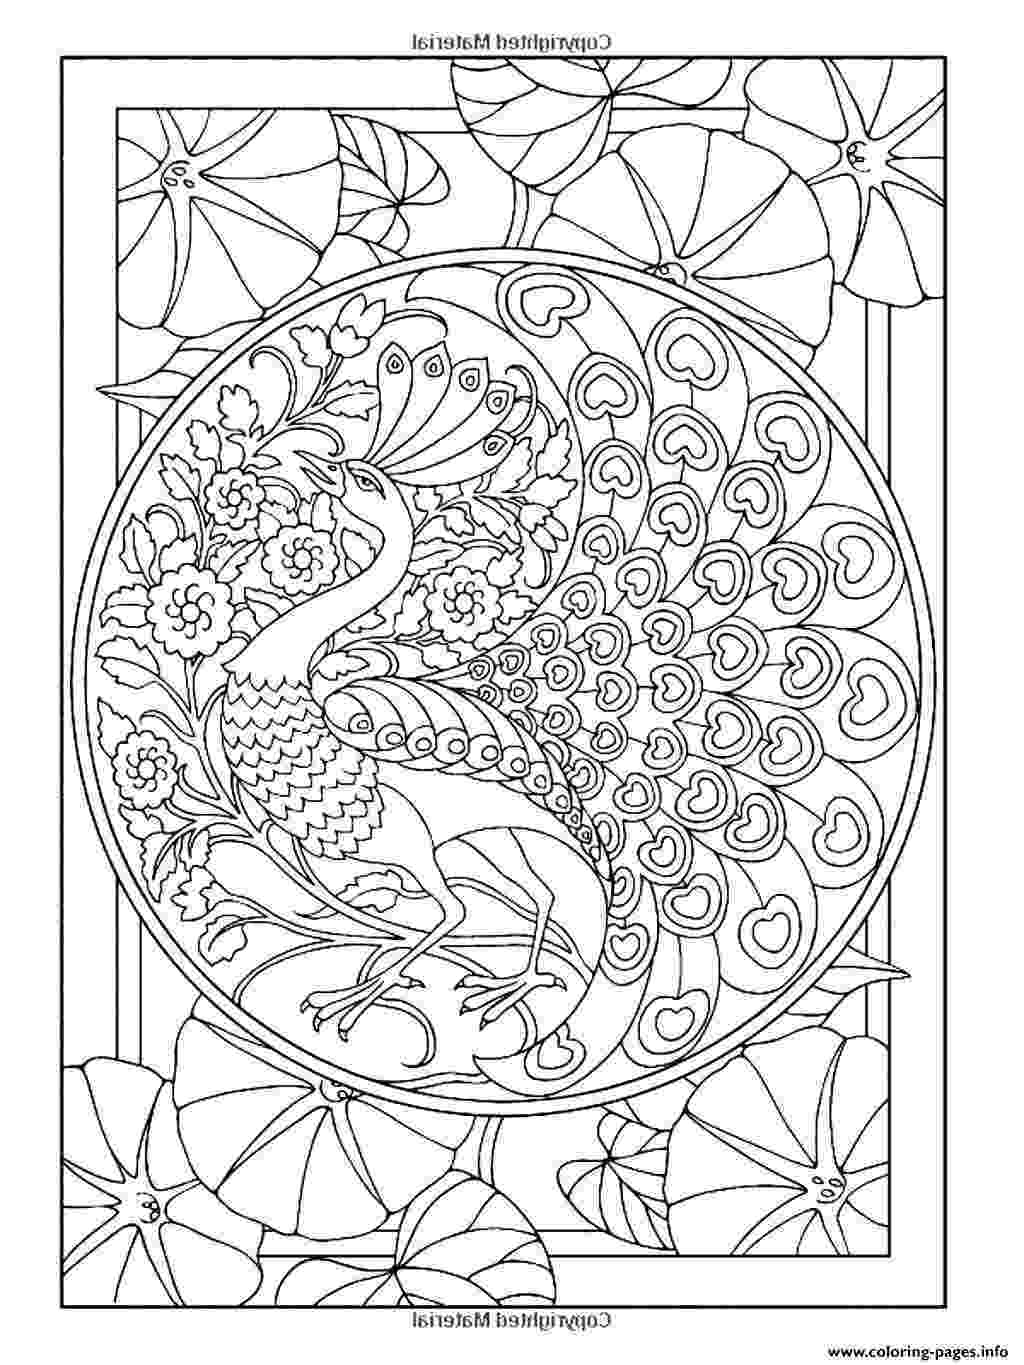 peacock coloring page peacock coloring pages page peacock coloring